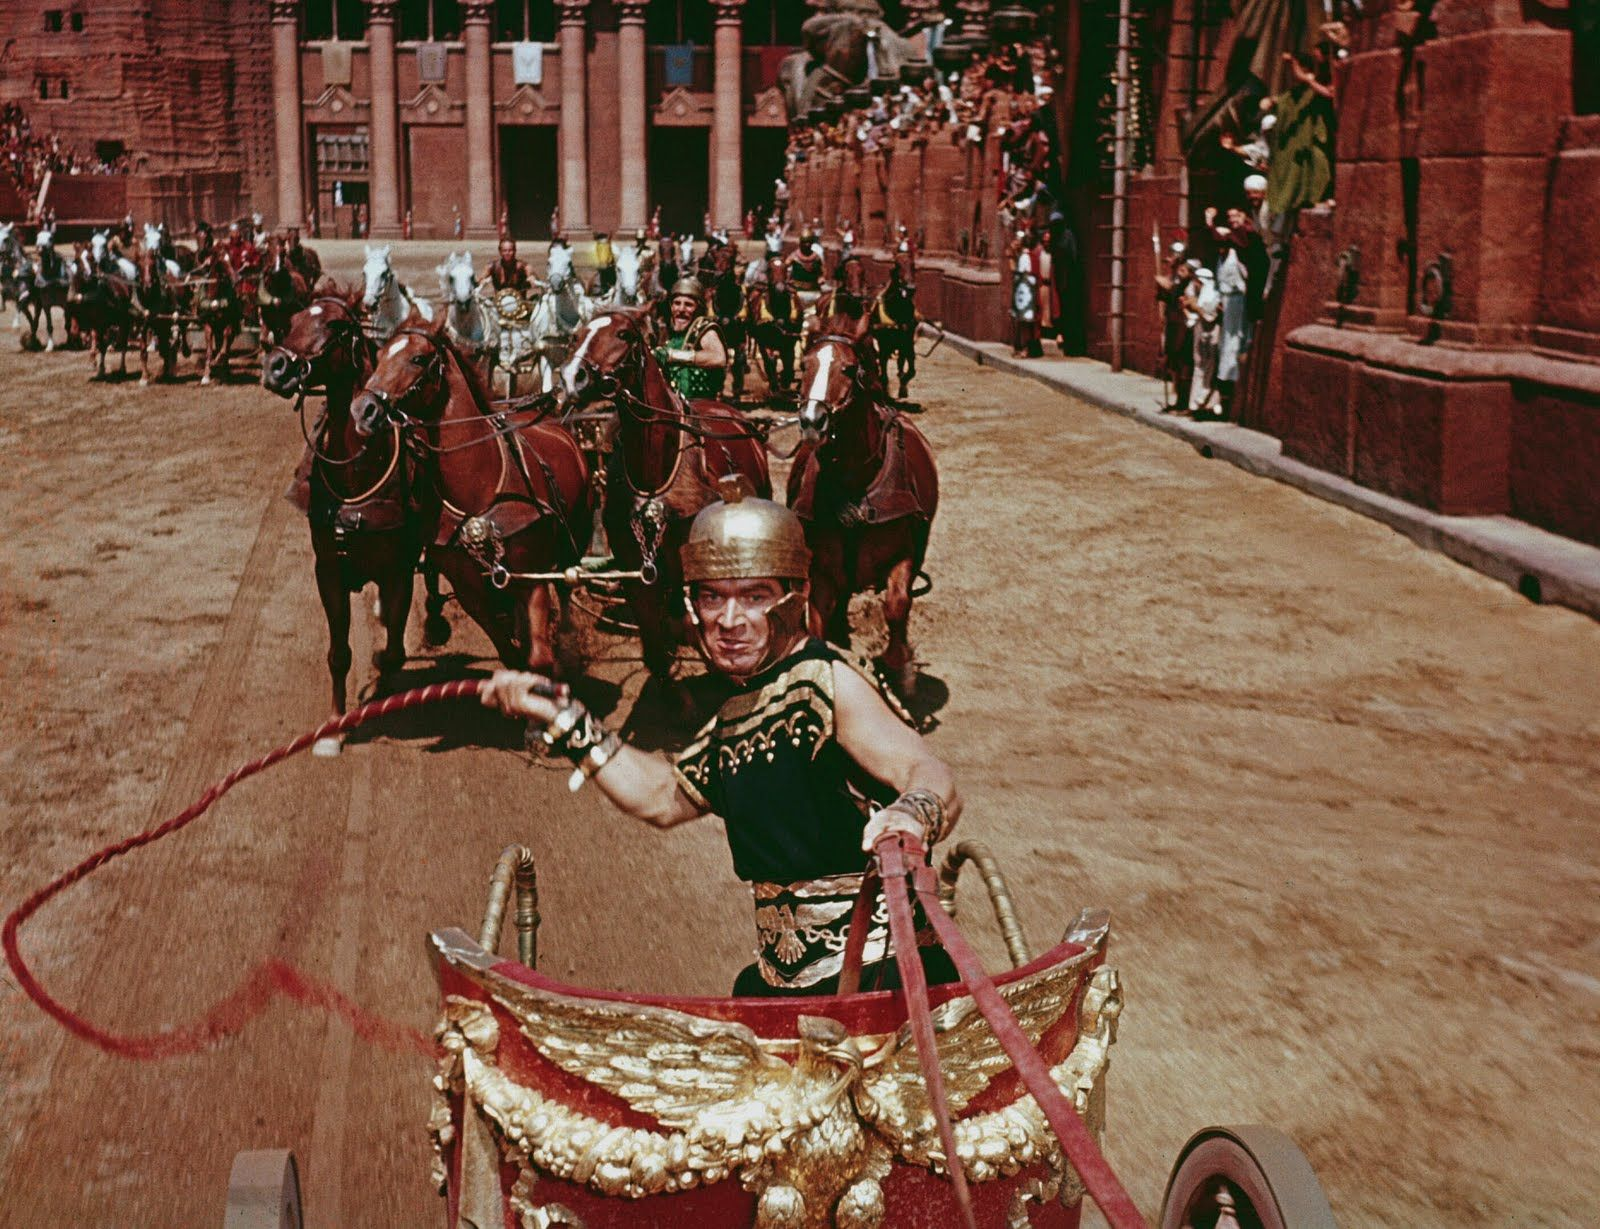 Ben hur the movie for